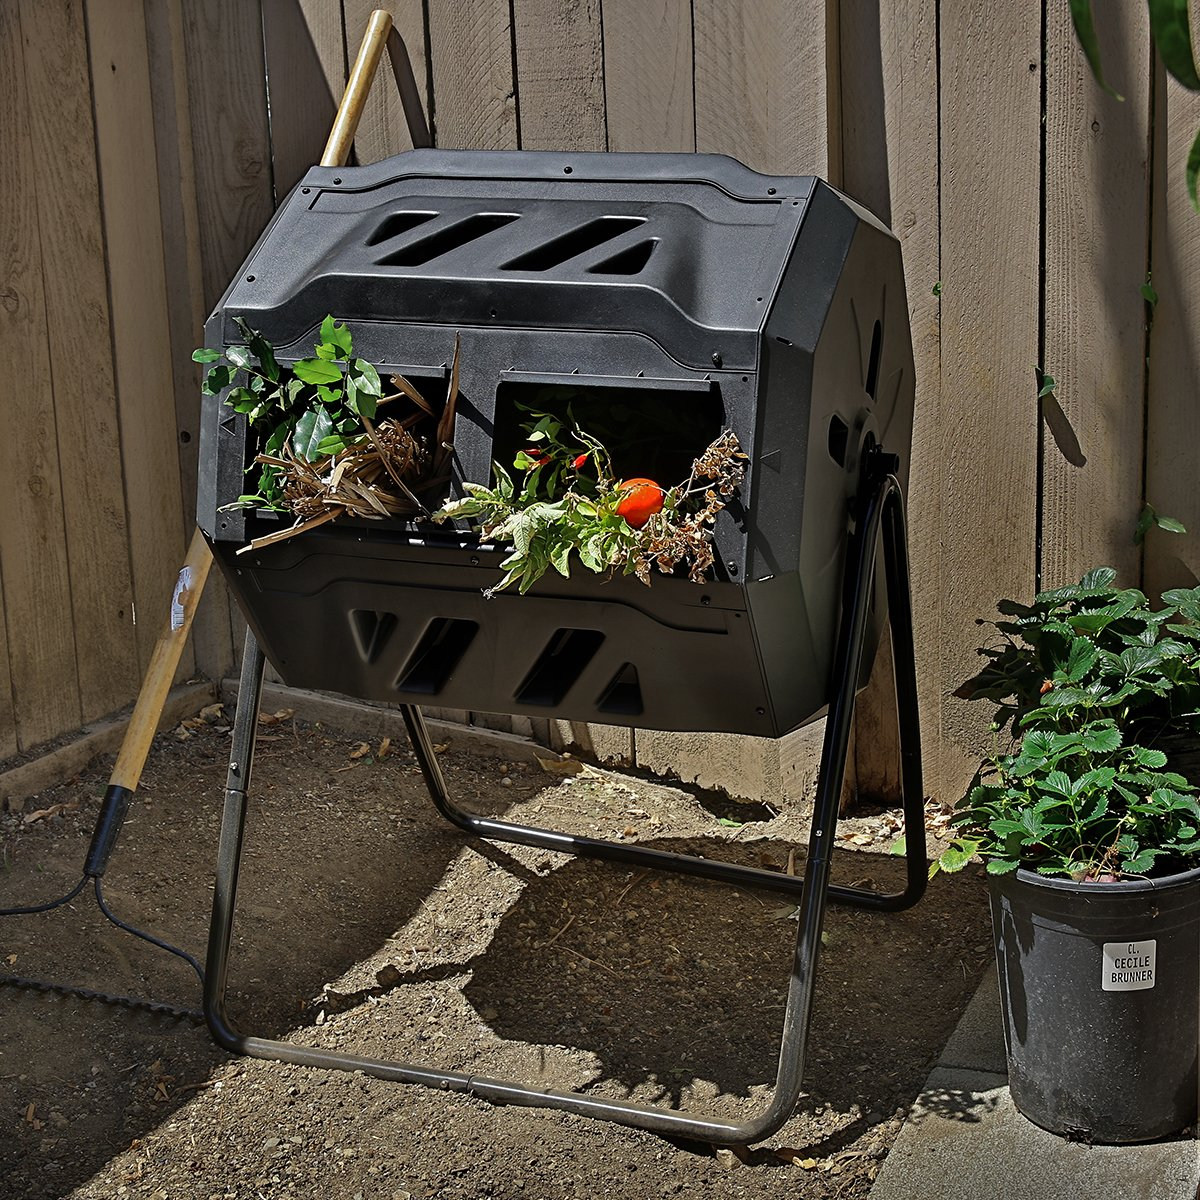 Barton Tumbler Composter Composting Bins product image